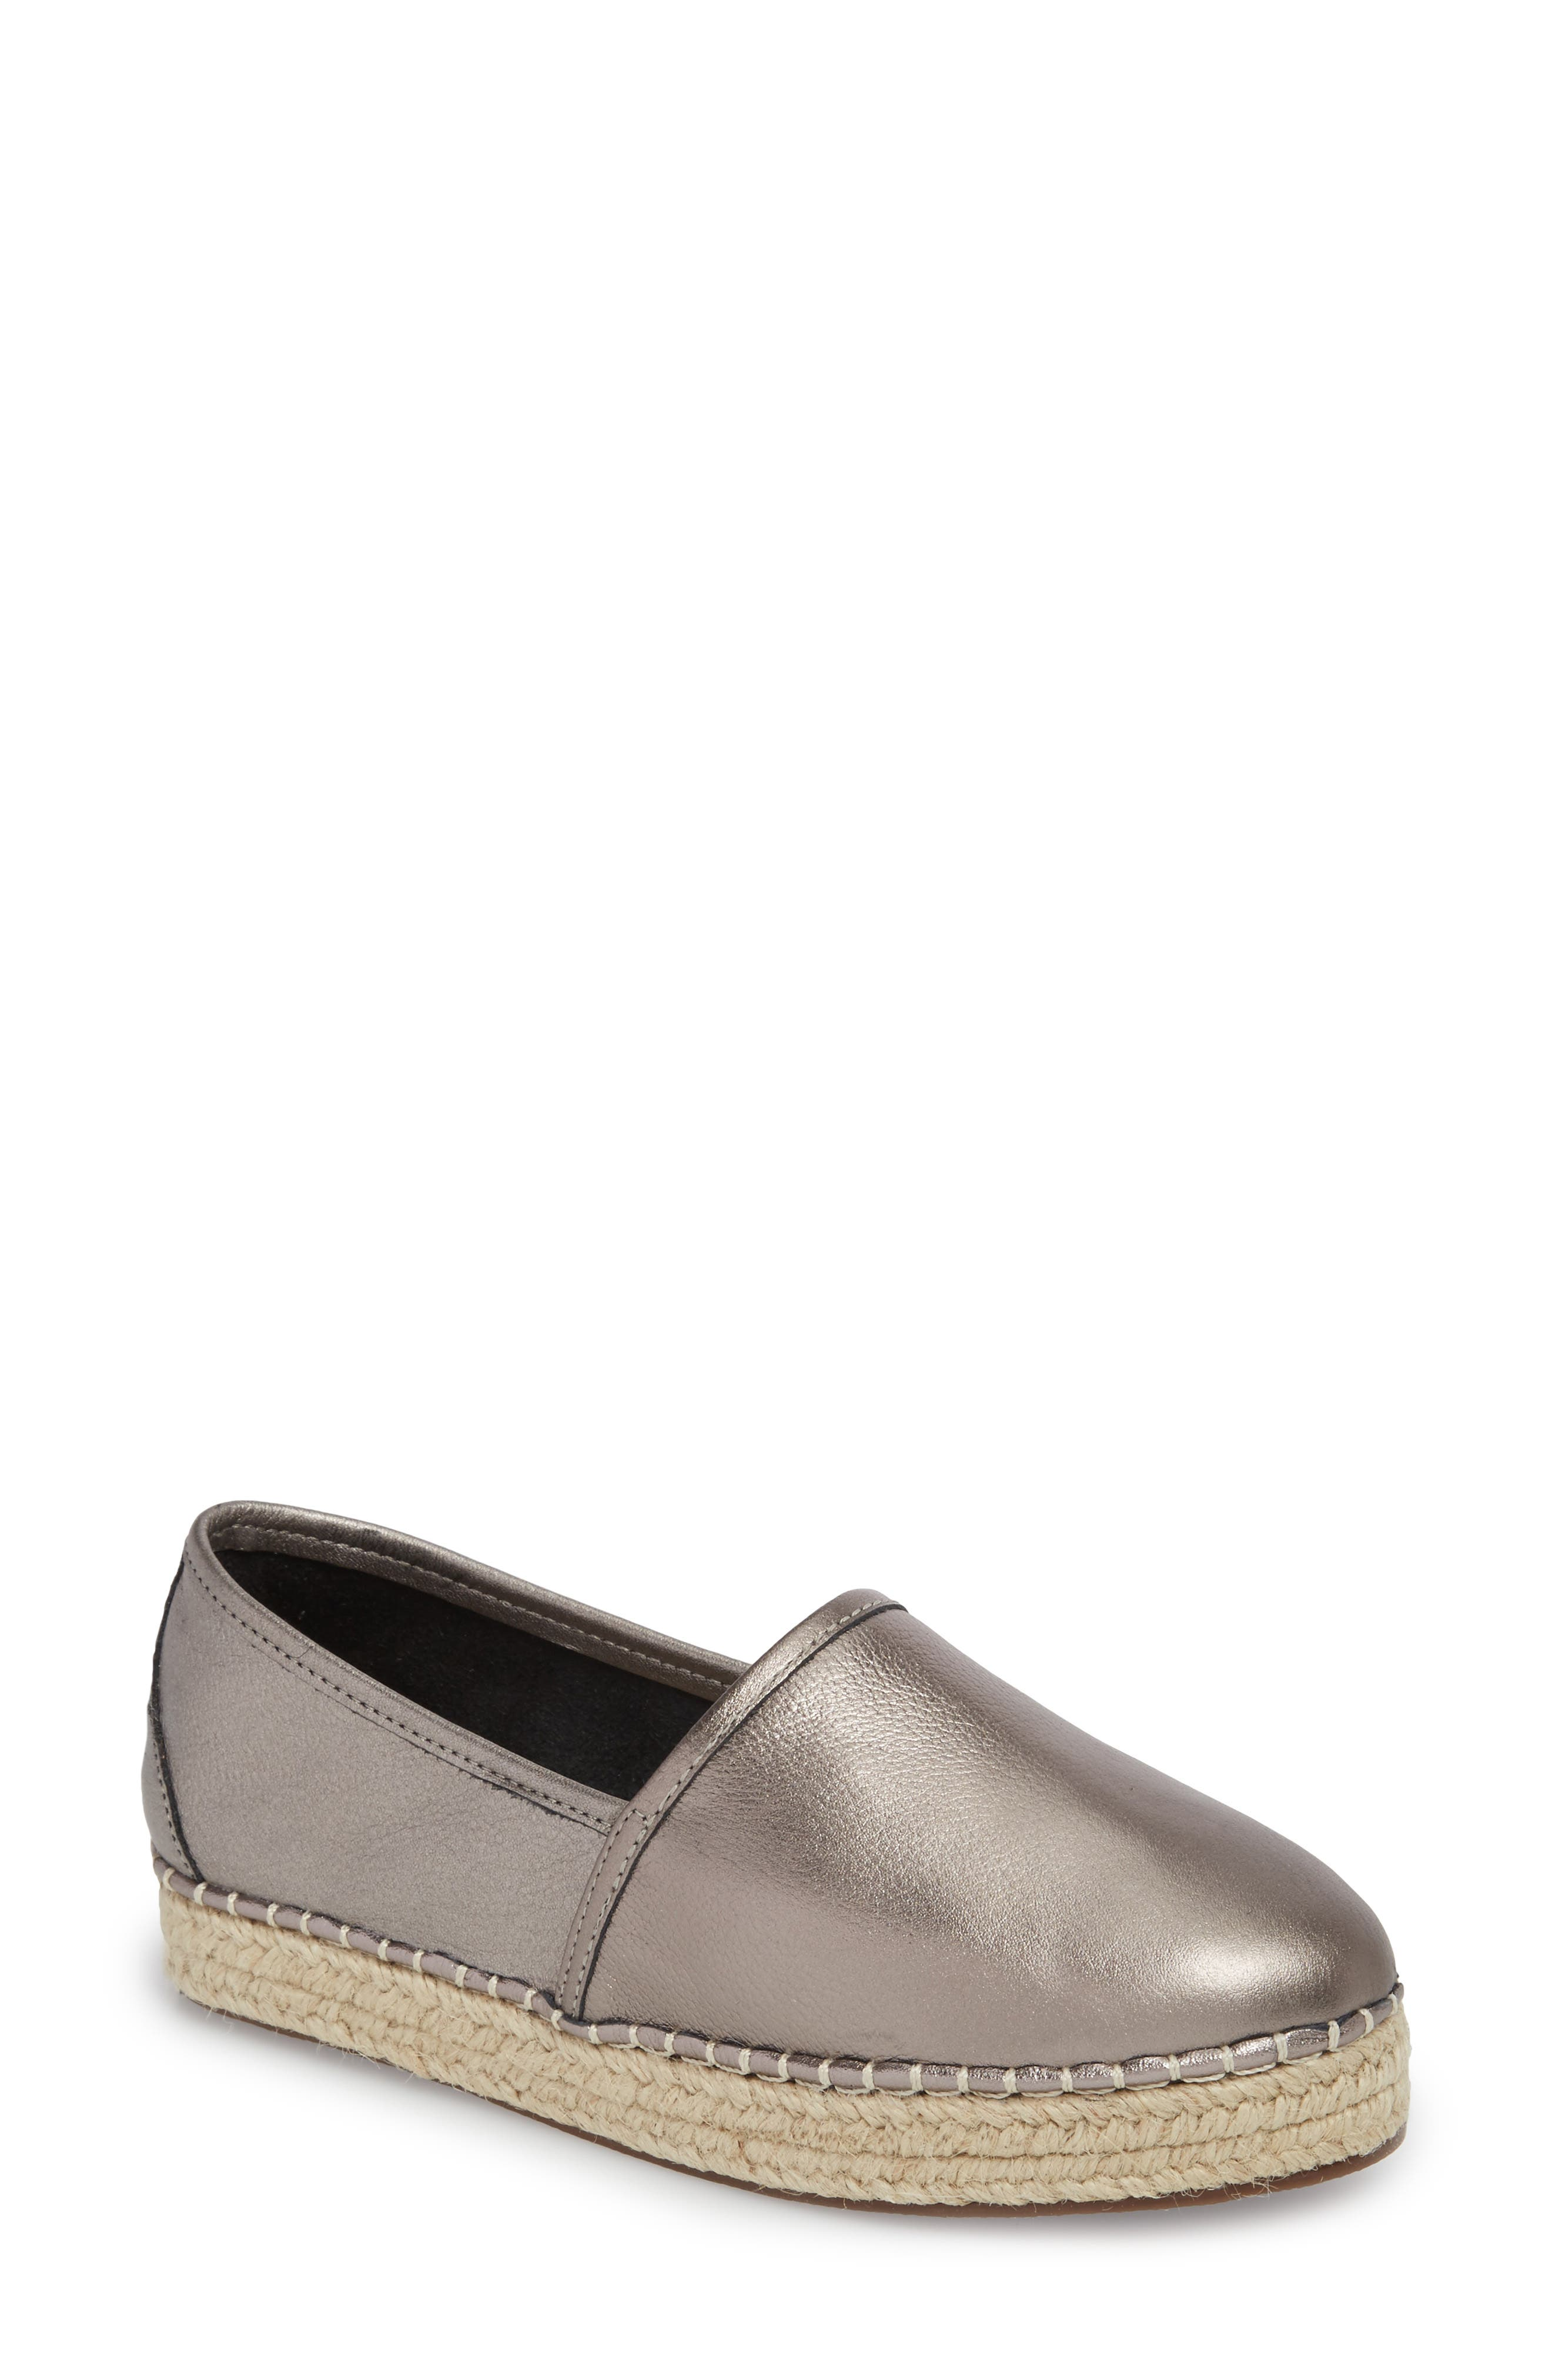 Boyd Espadrille Sneaker,                         Main,                         color, GUNMETAL LEATHER